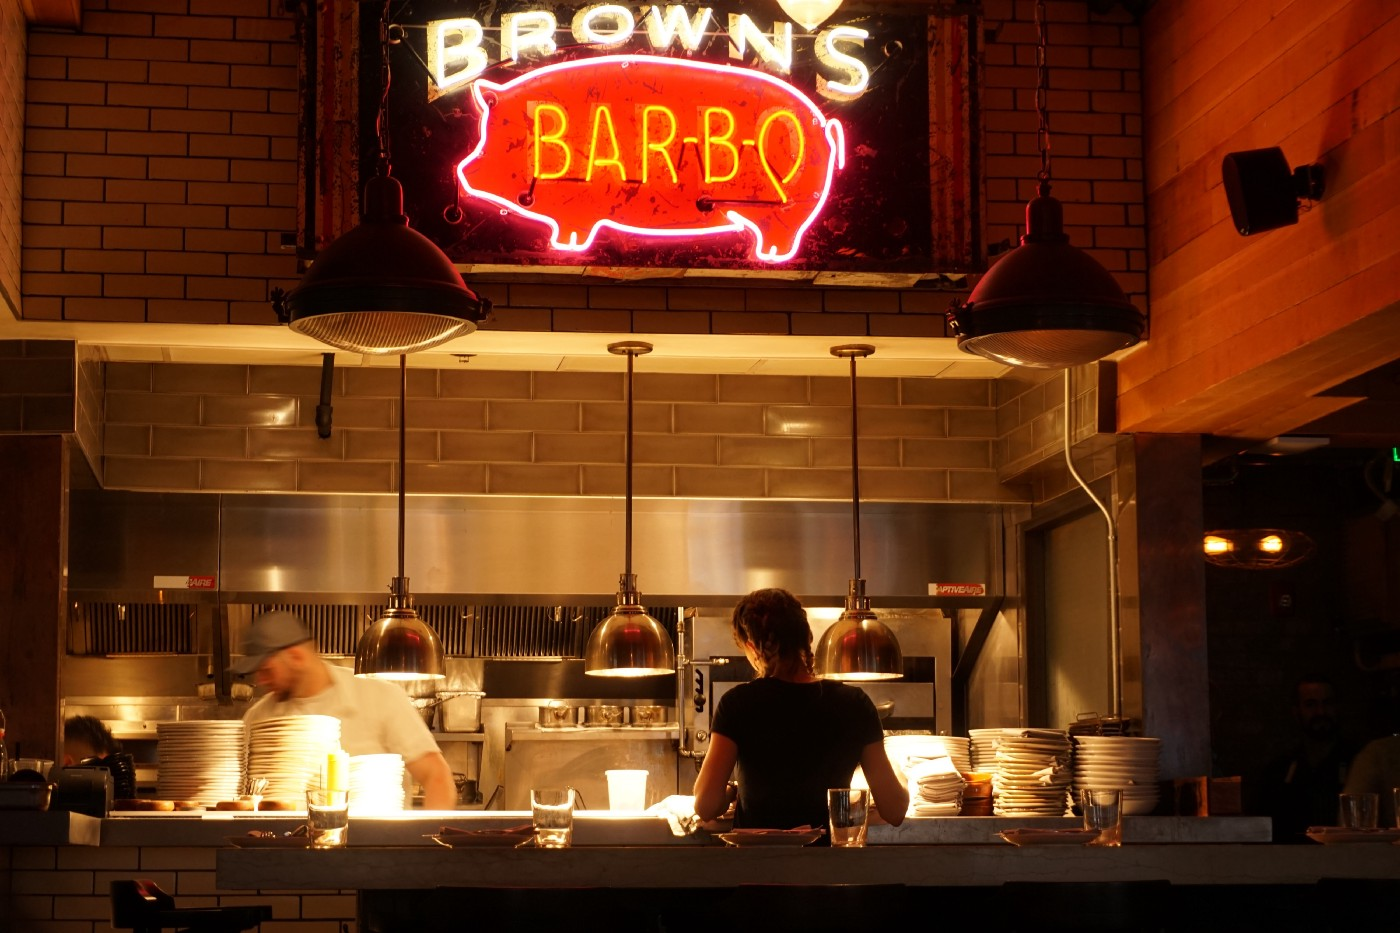 brown's bbq sign with someone getting food